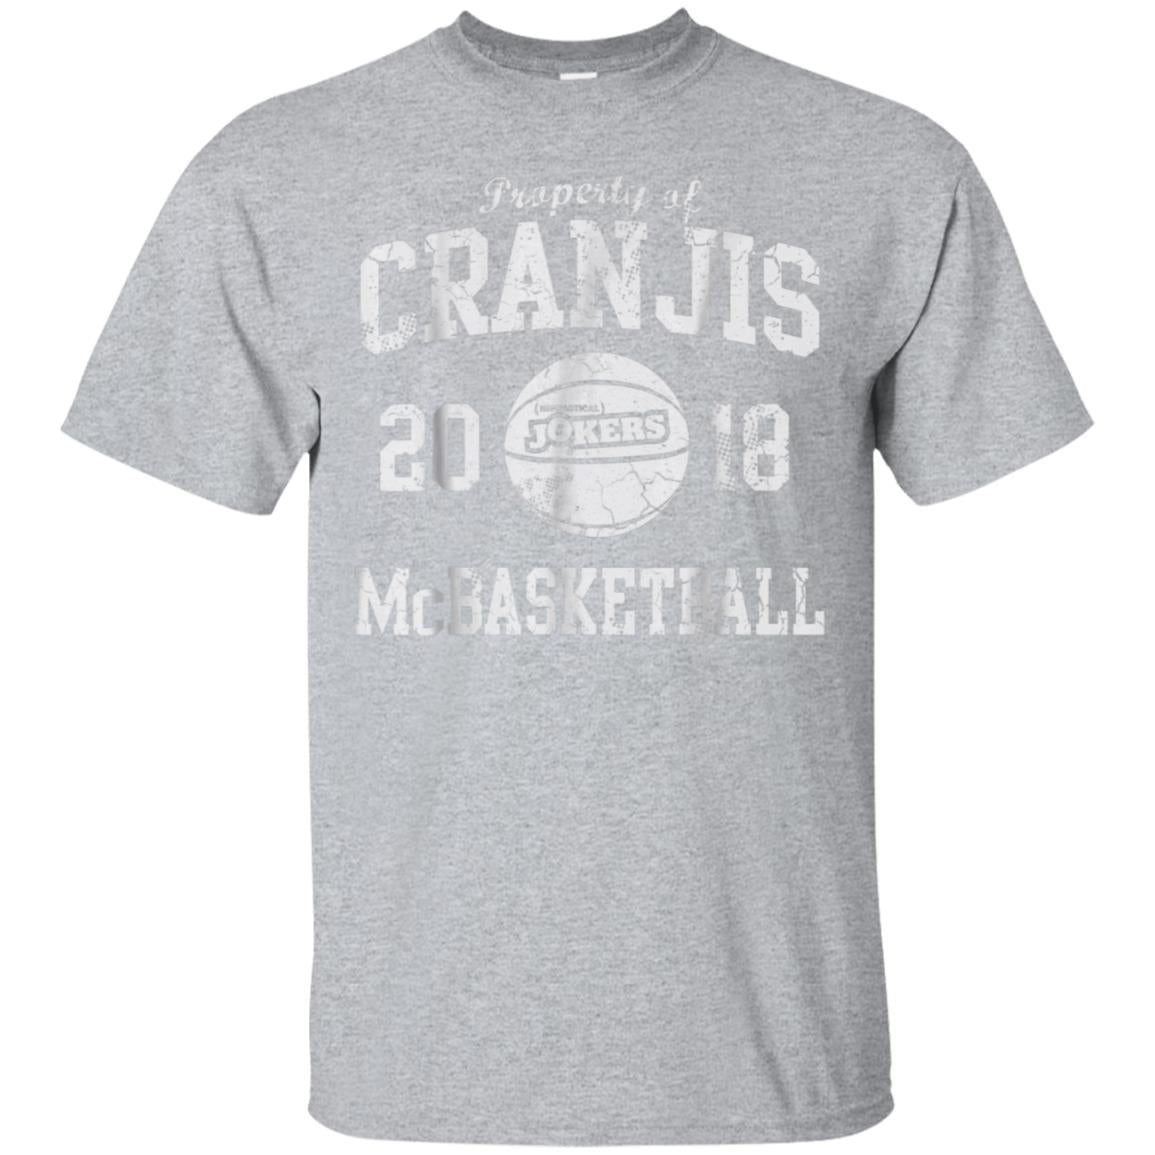 Impractical Jokers Cranjis McBasketball T-Shirt 99promocode